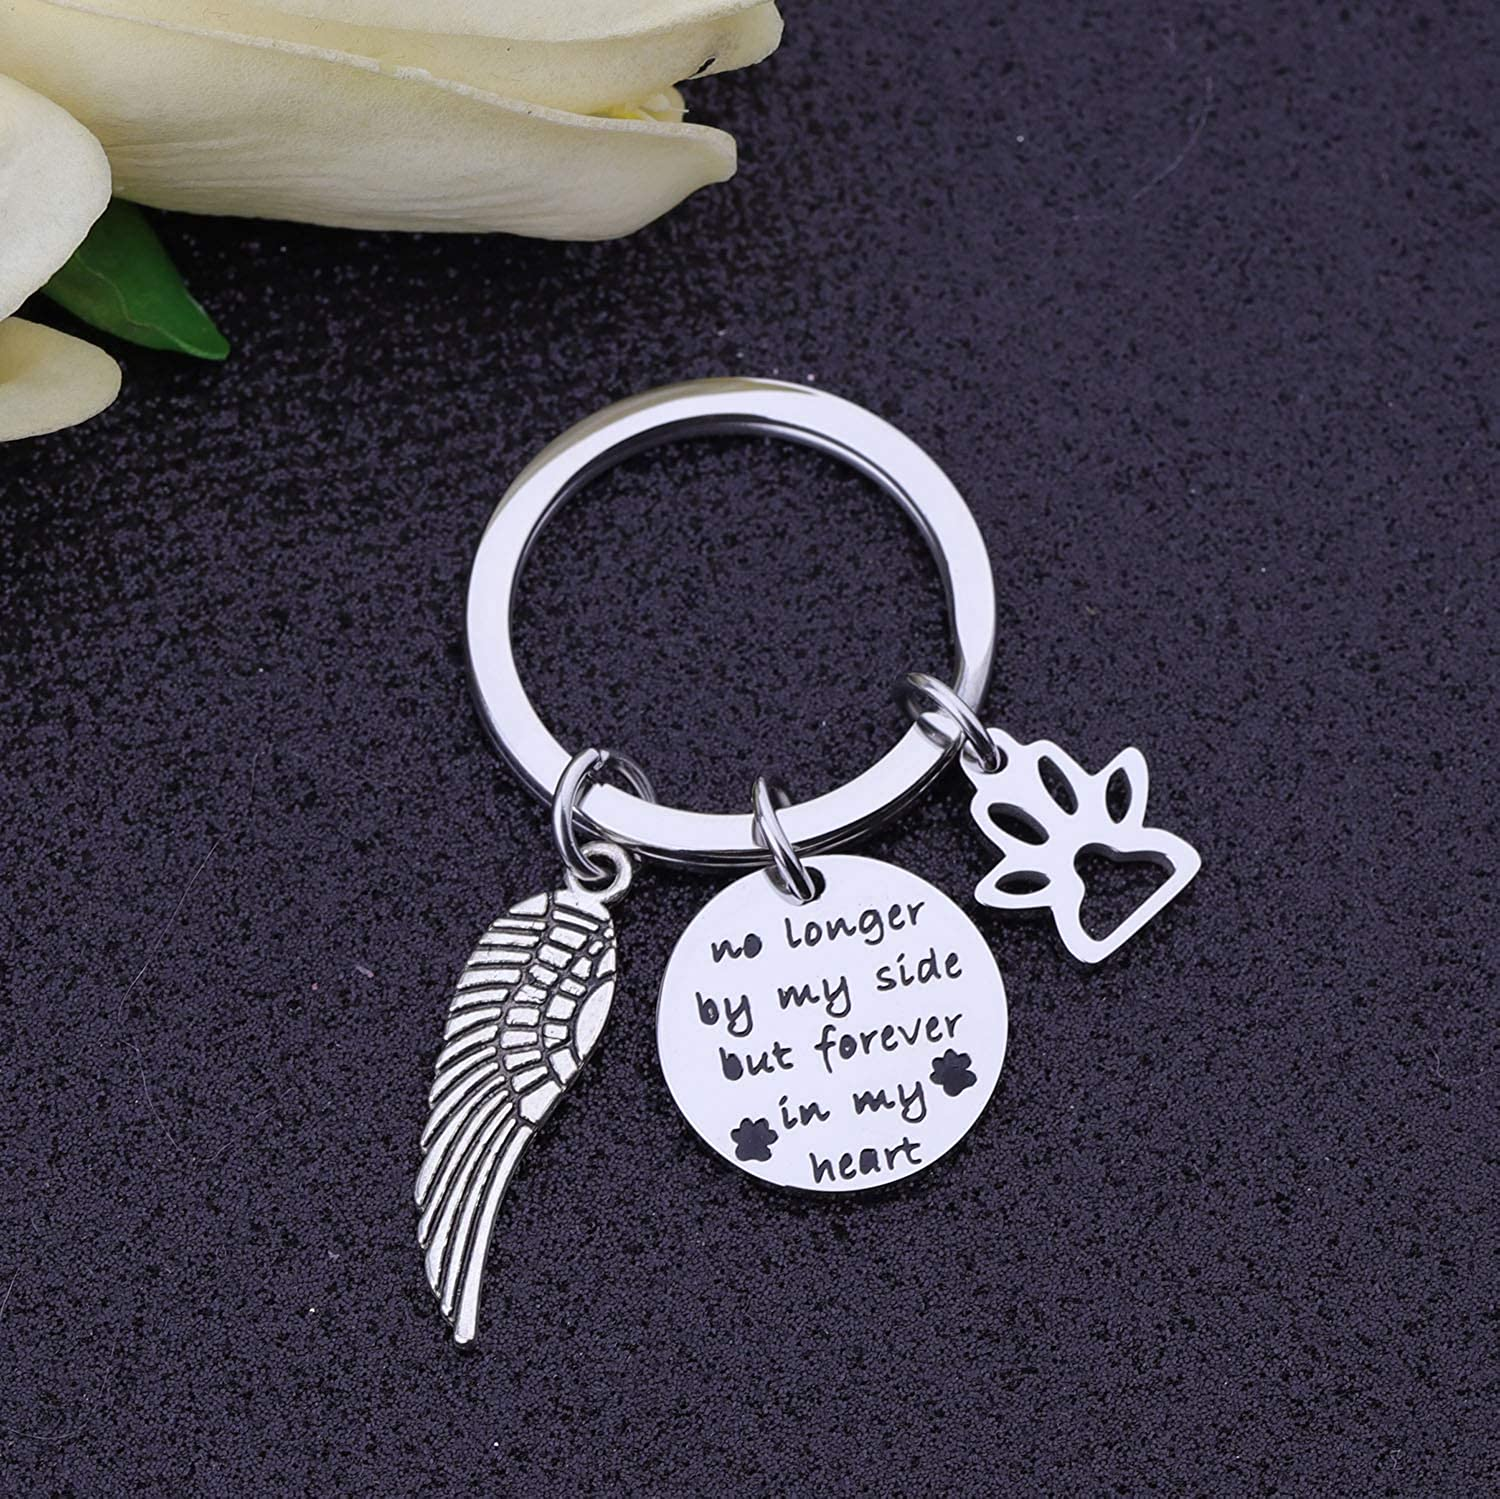 bobauna Pet Memorial Gift No Longer by My Side But Forever in My Heart Bracelet with Paw Print Angel Wing Charms in Memory of Pet